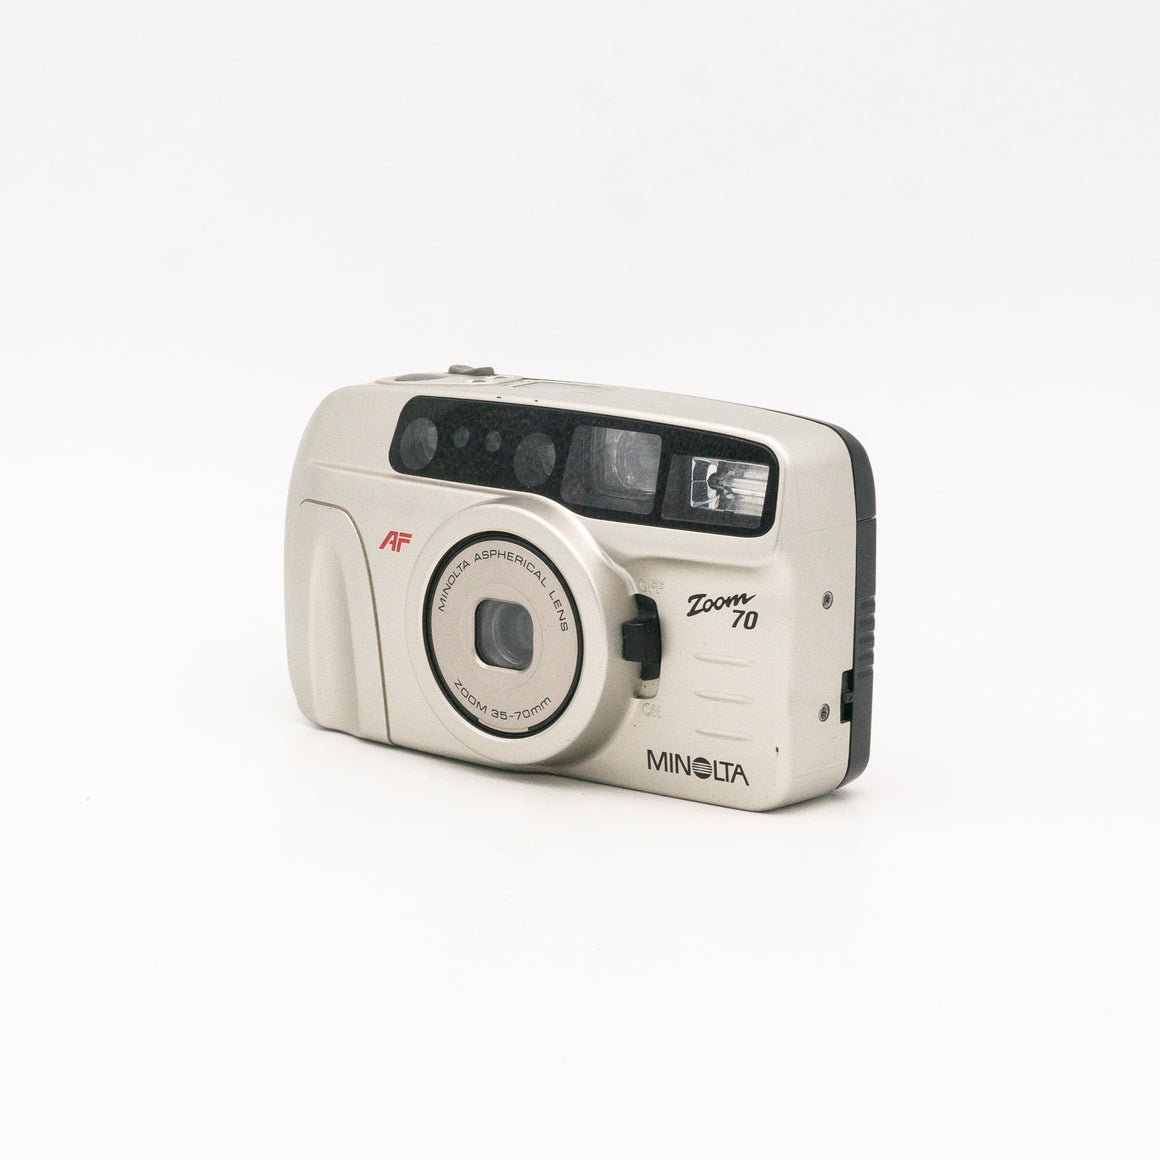 Minolta Zoom 70 Point & Shoot Camera with 35mm-70mm Zoom Lens